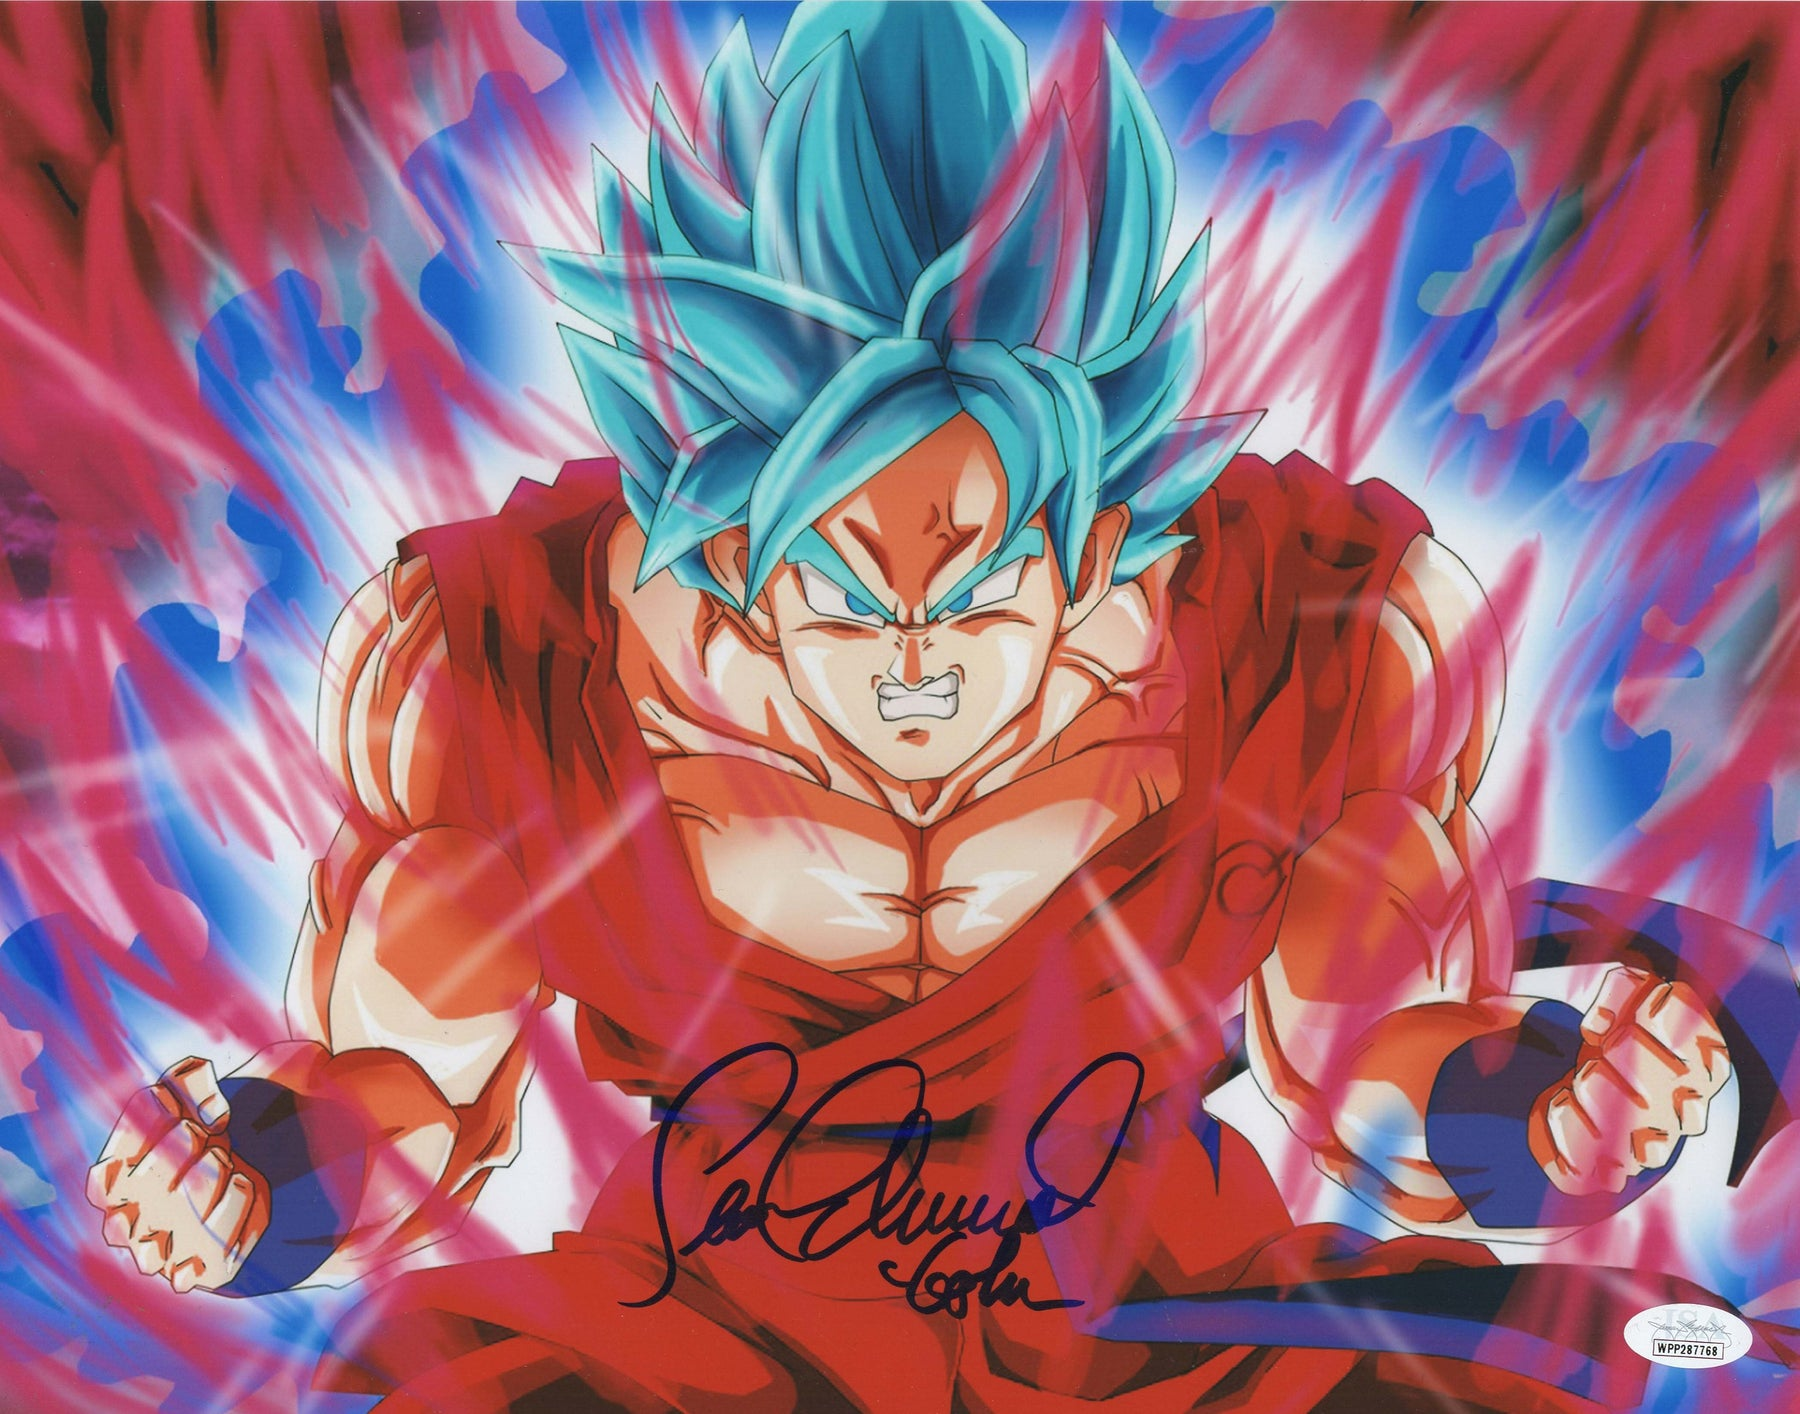 Sean Schemmel Autograph 11x14 Photo Dragon Ball Z Goku Signed JSA COA 4